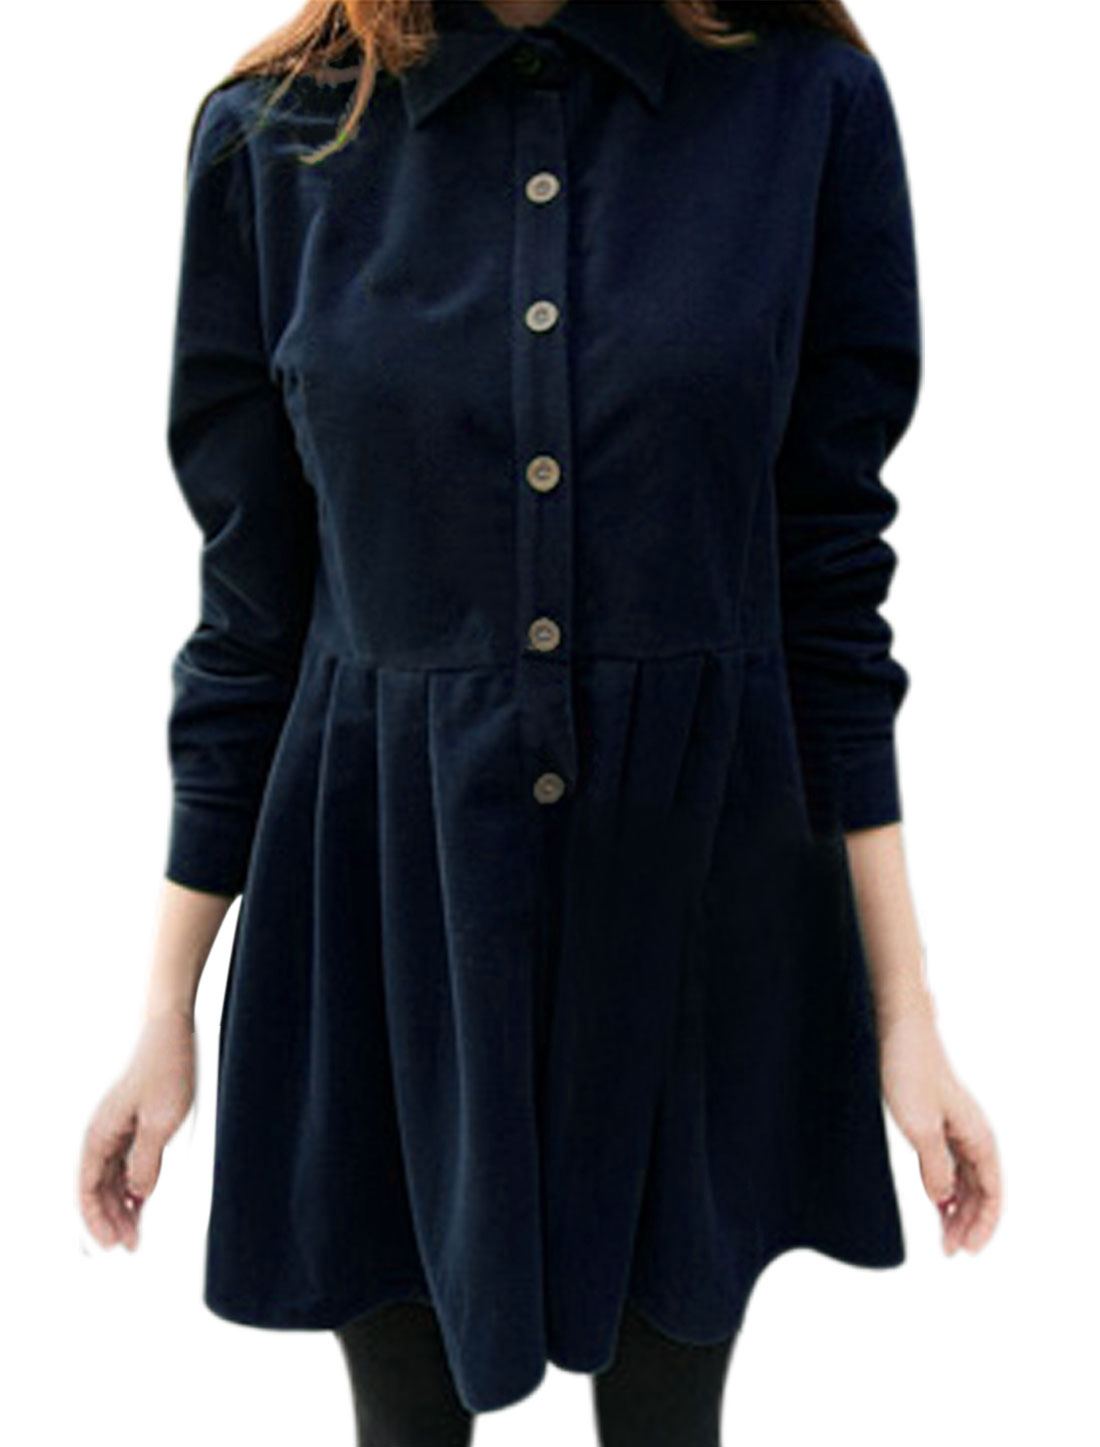 Women Point Collar Long Sleeves Pleated Shirt Dress Navy Blue S